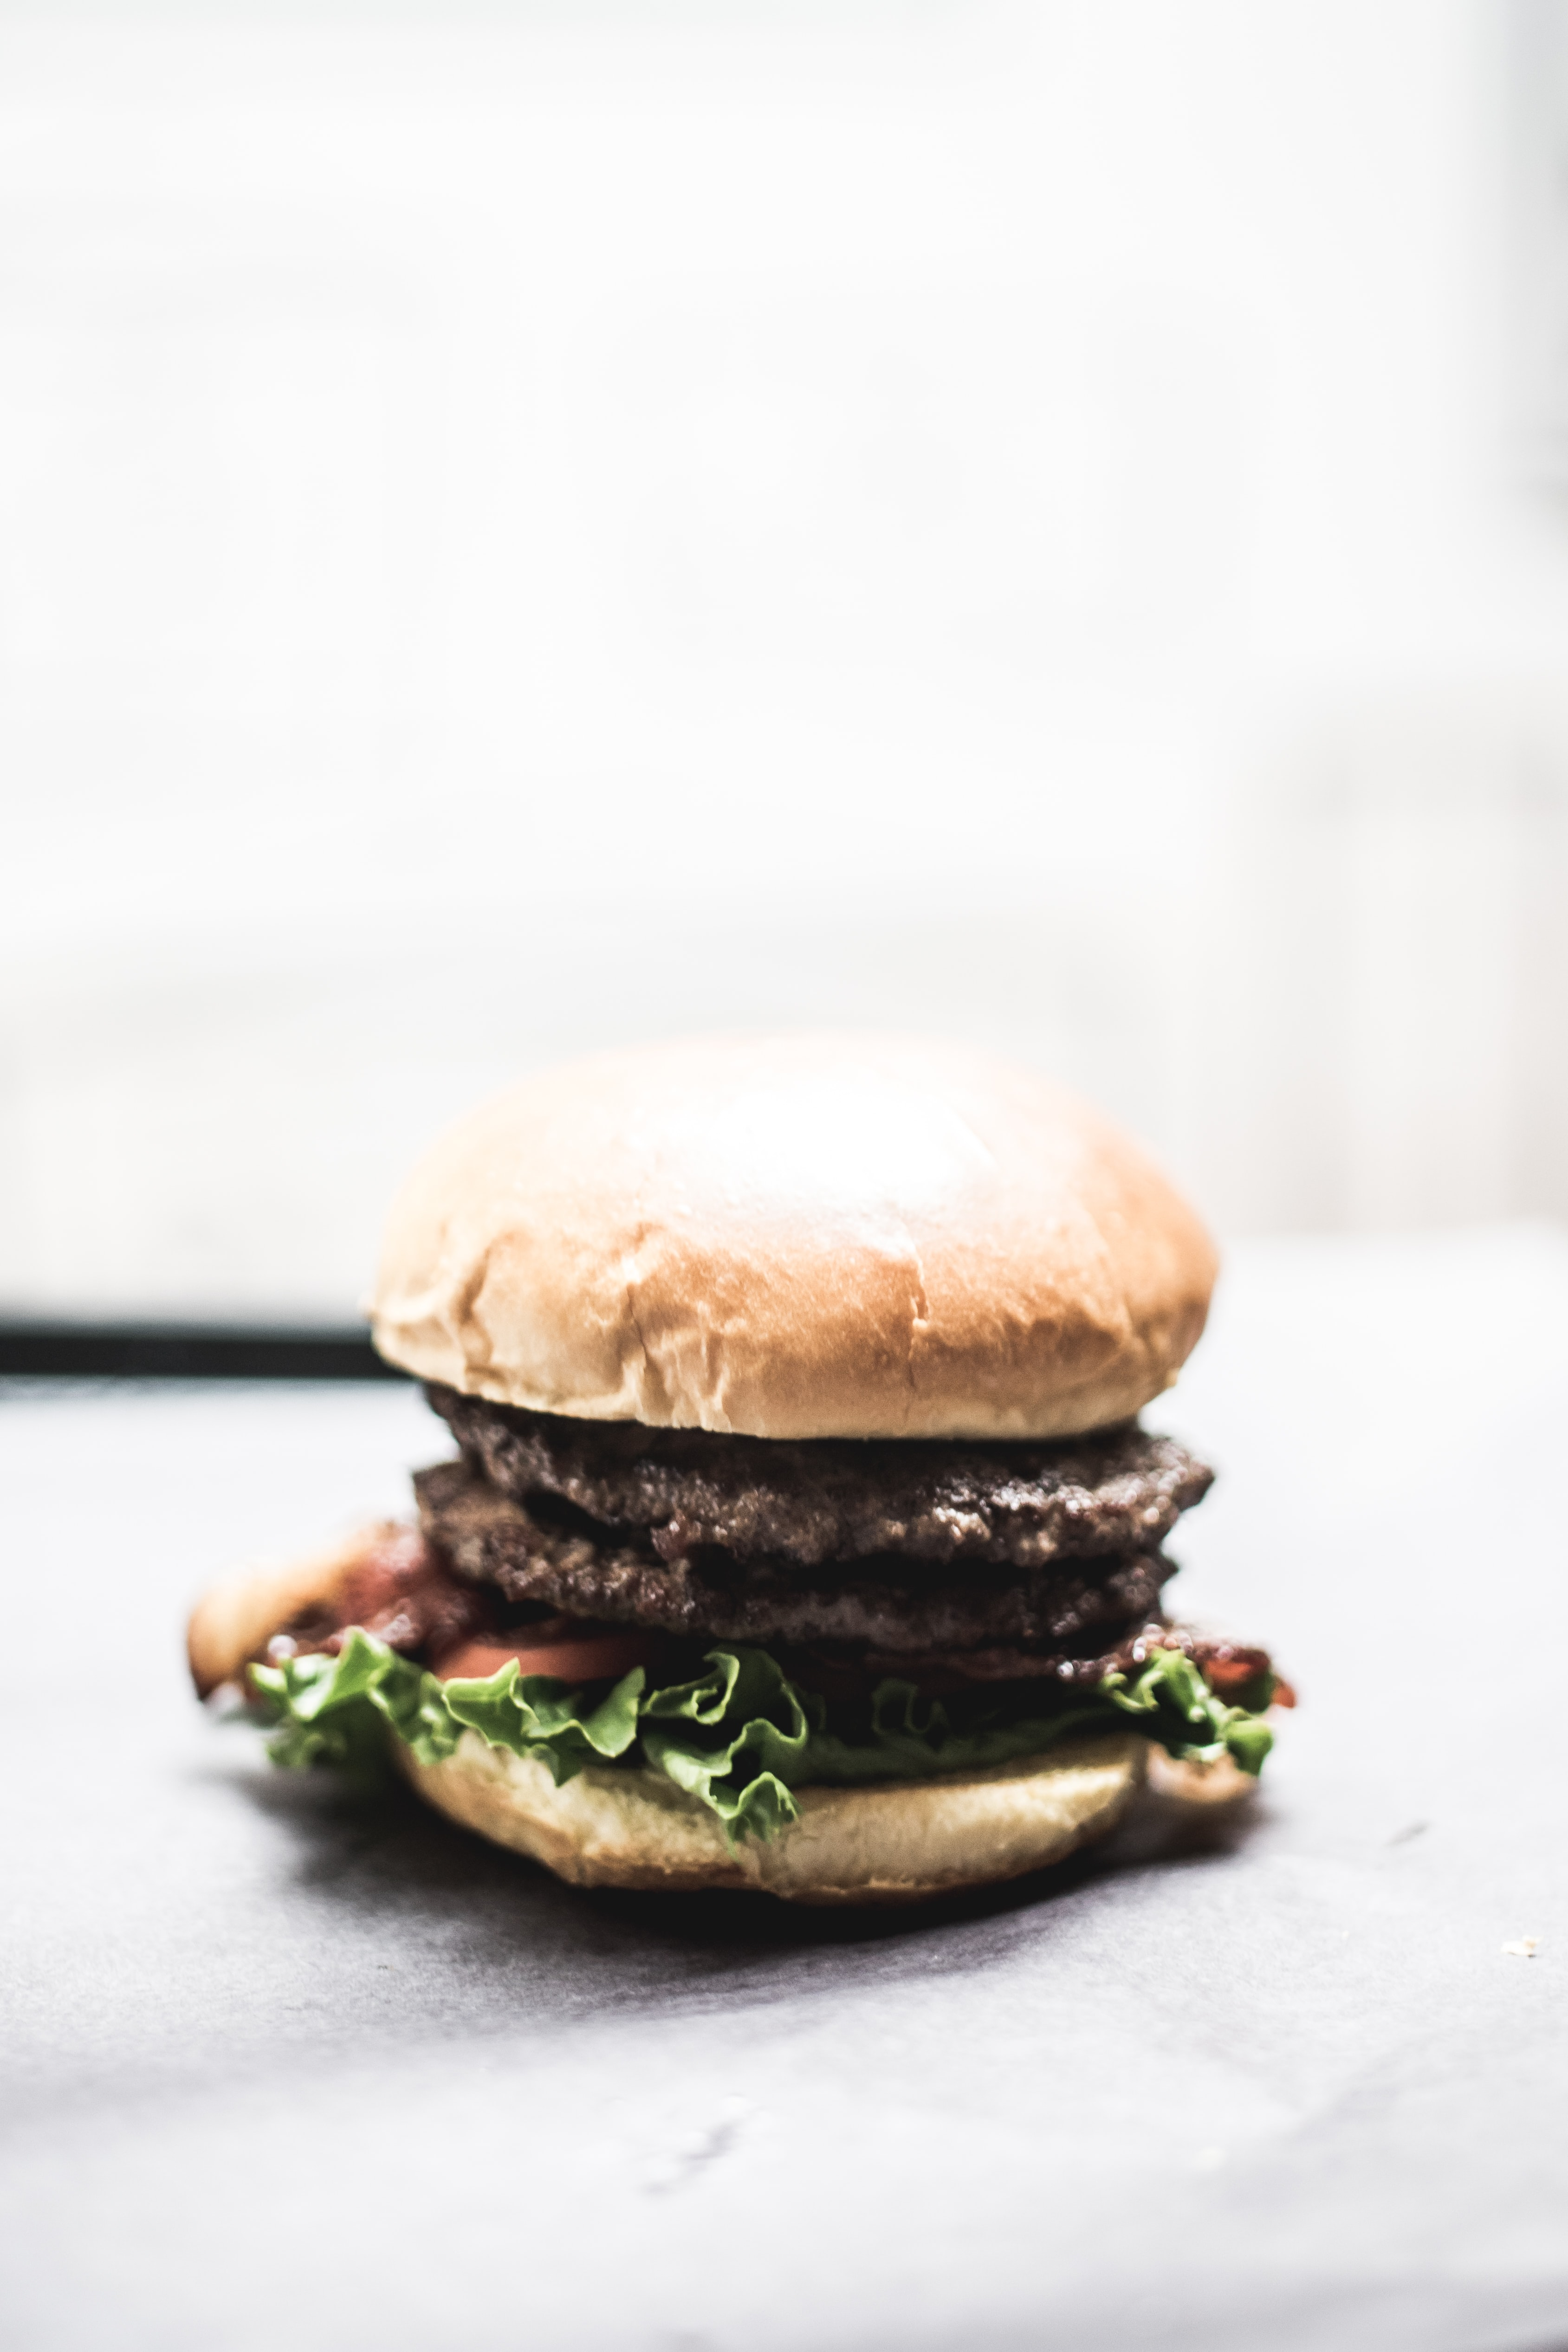 burger with lettuce and tomato on grey surface